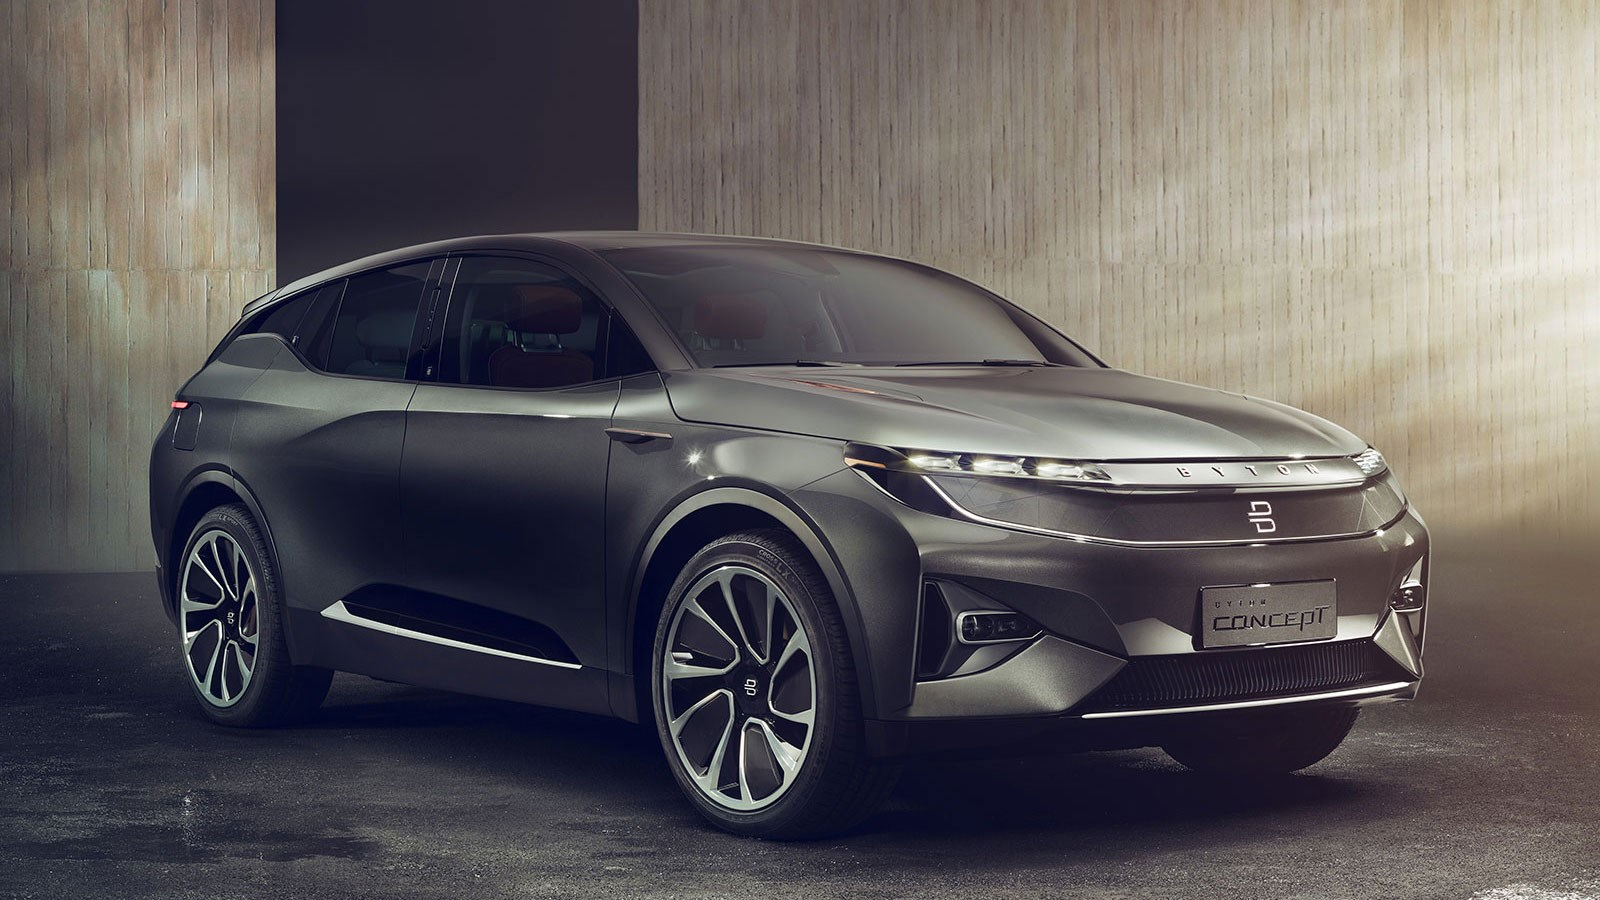 The Future Is Here: Byton's New Electric Car Could Replace Your Smartphone